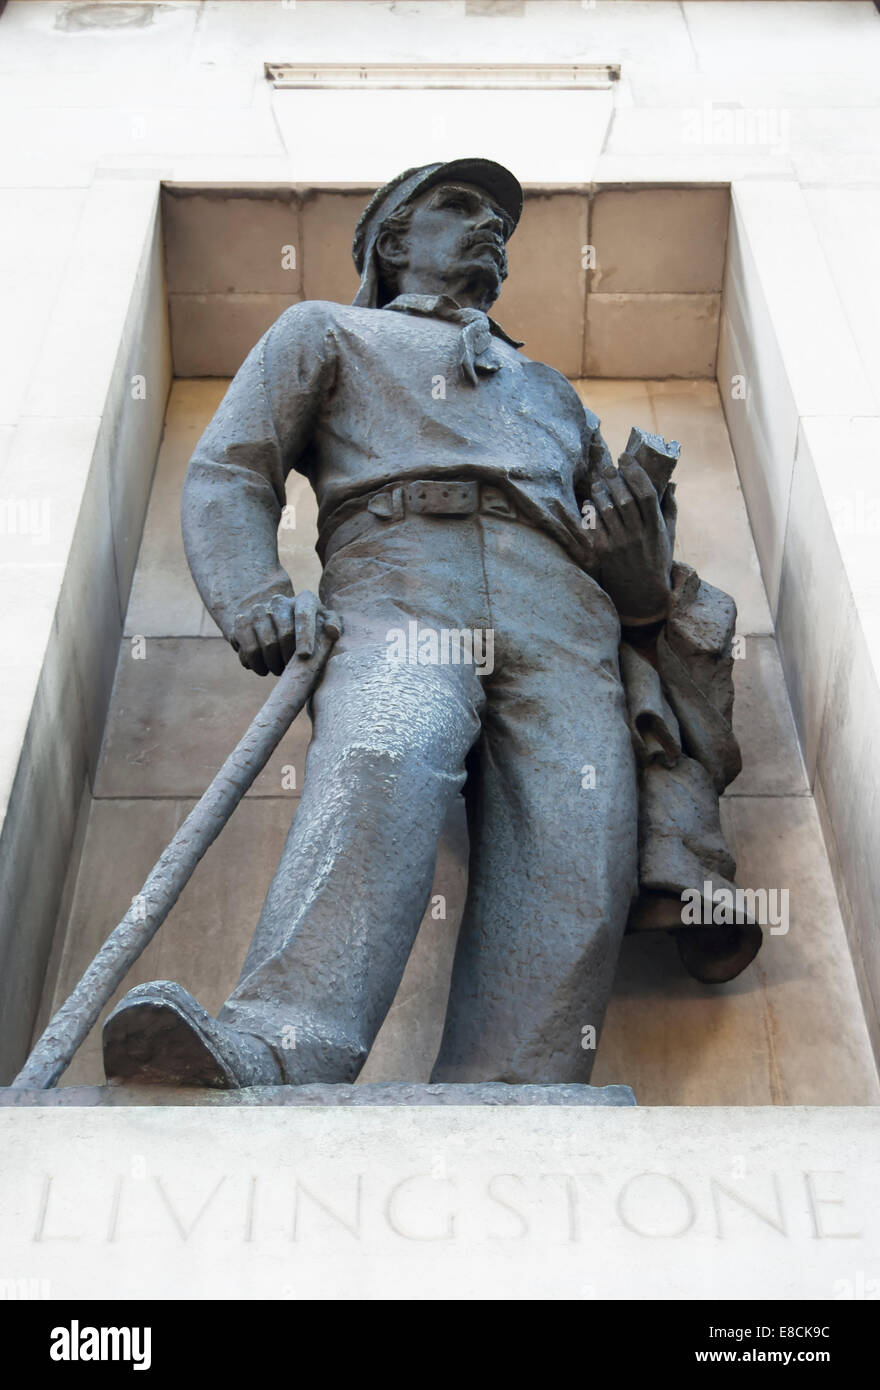 t.b. huxley-jones'  statue of missionary and explorer david livingston, outside the royal geographical society, - Stock Image